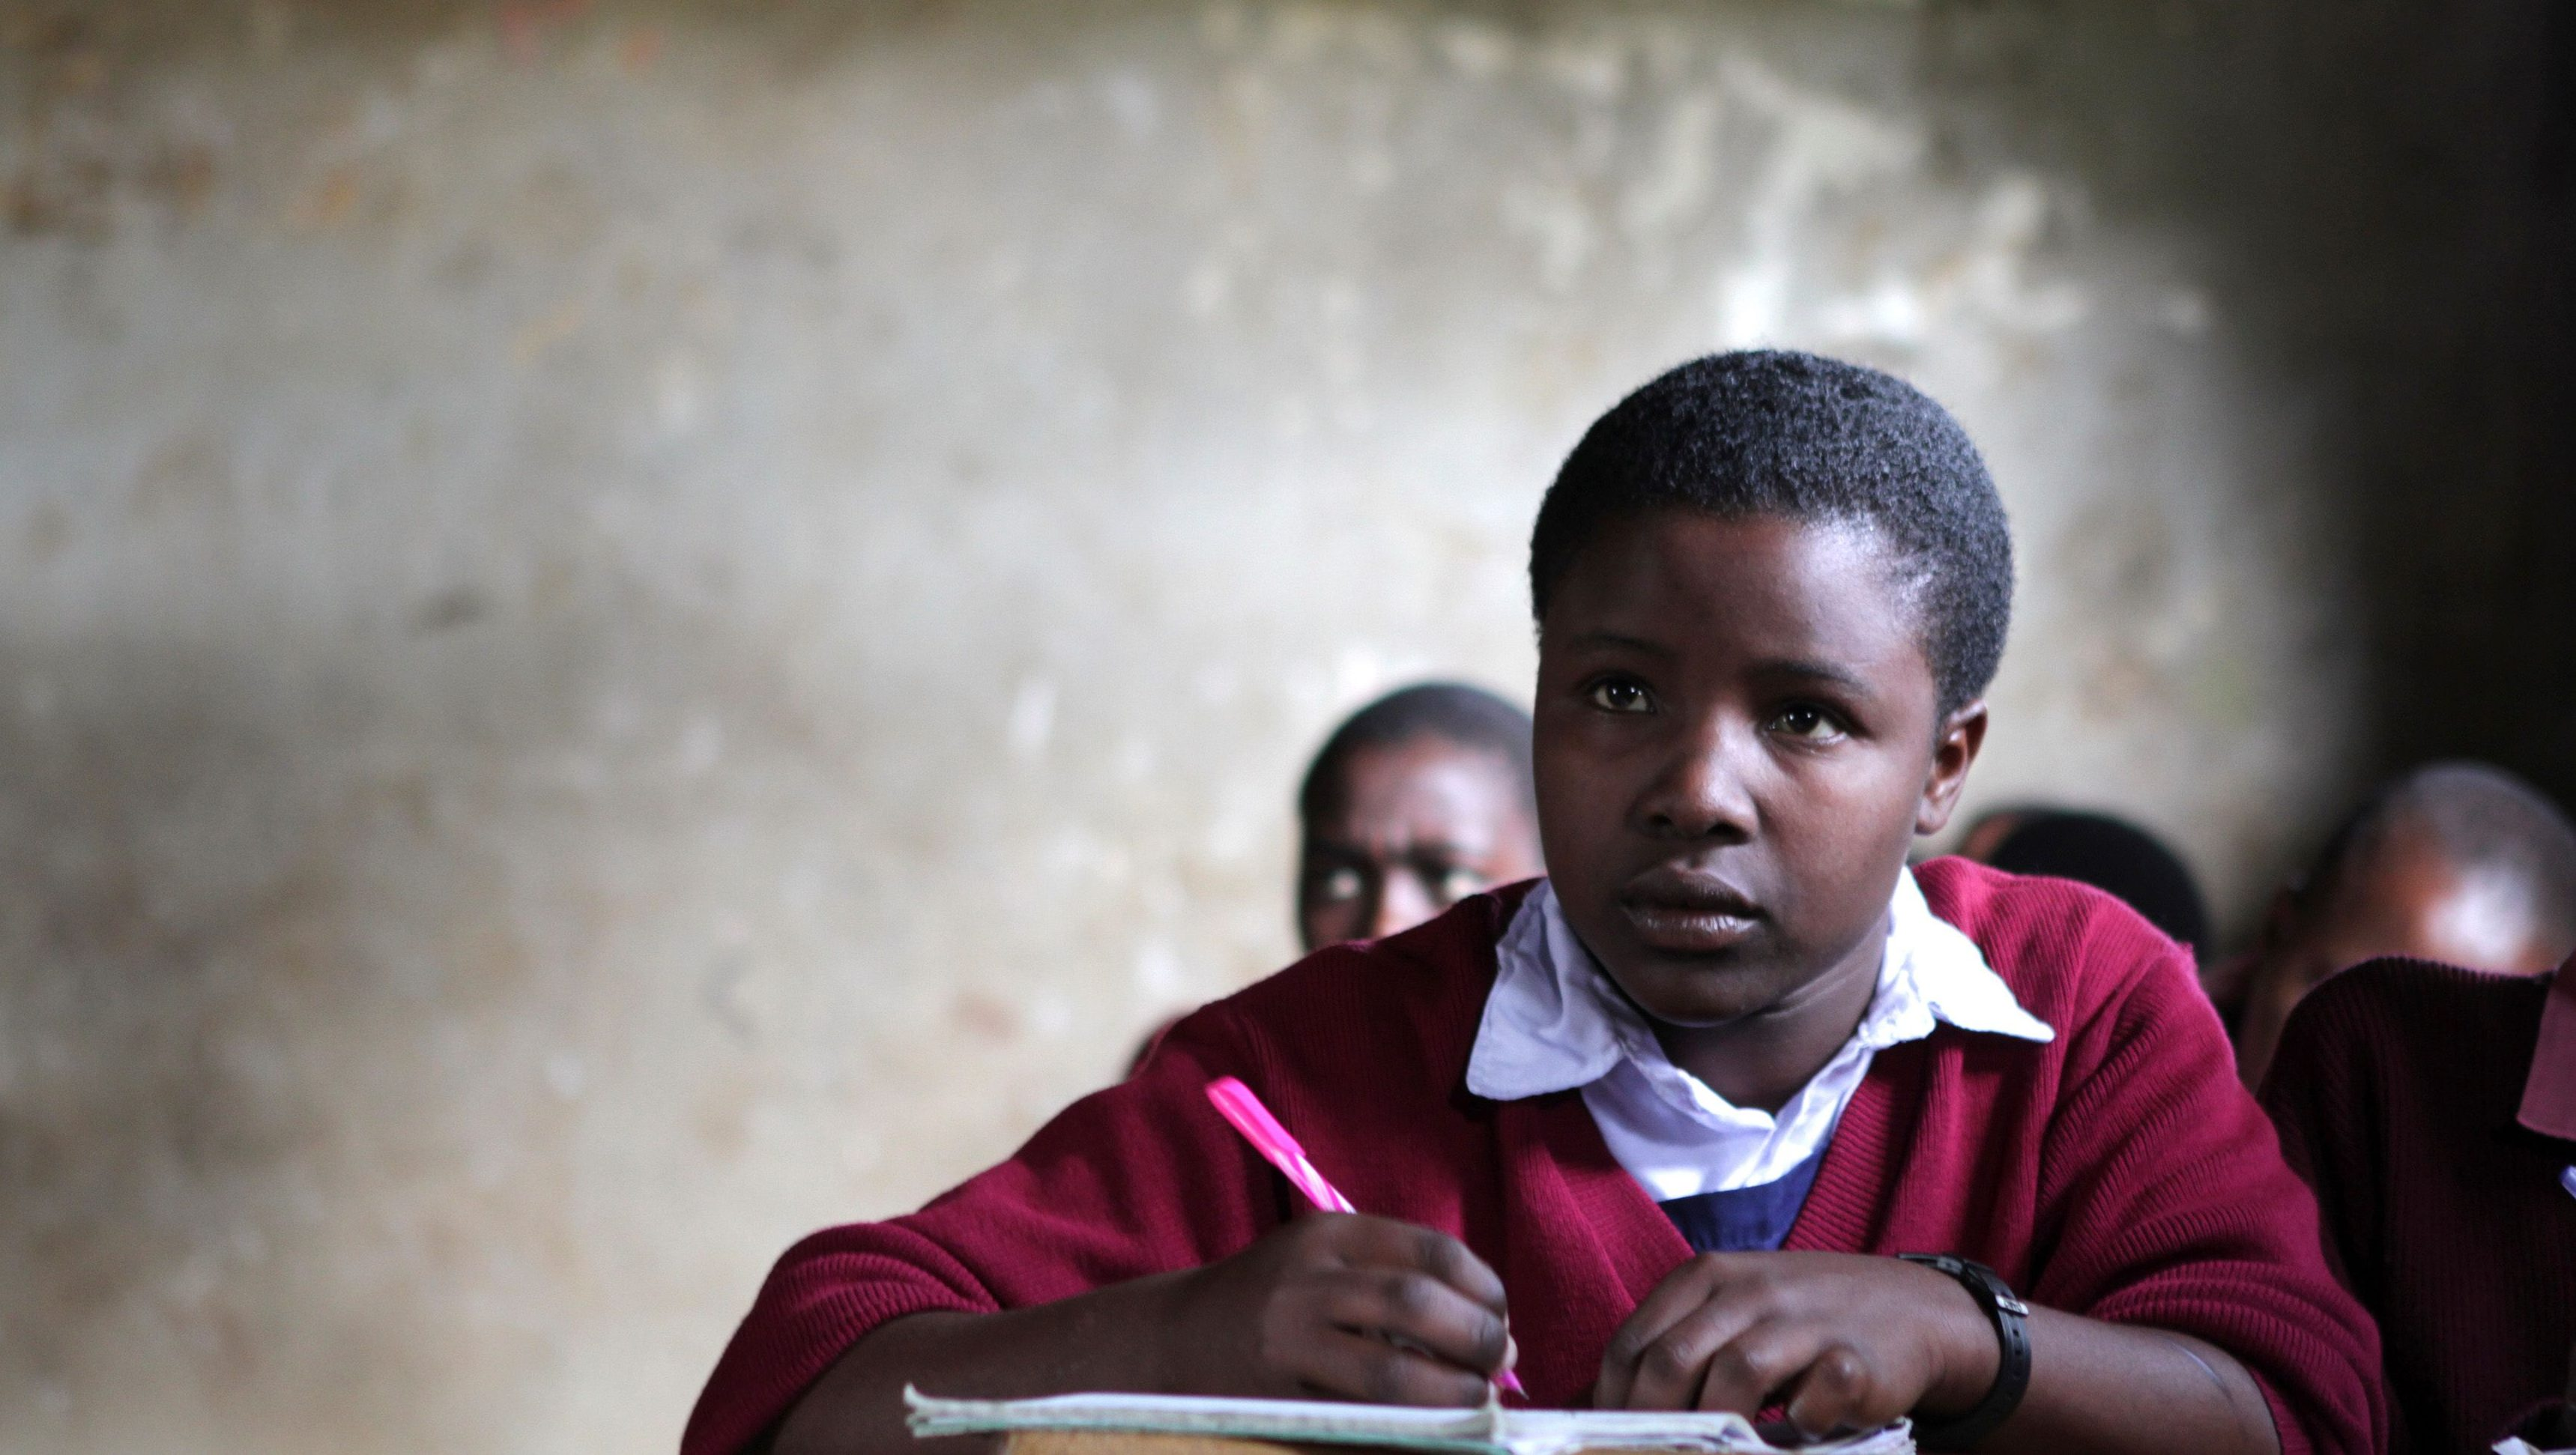 Eunice Metian sits in her classroom in Sajiloni Primary School in the semi-arid Kajiado County, south of Kenya's capital Nairobi, June 12, 2012. With help from German Agro Action, the school was able to build a sustainable water tank, freeing students from the task of fetching water and allowing them to spend more time on their homework and improving their results, according to deputy headteacher Elizabeth. By 2025, two-thirds of people worldwide are expected to face water shortages as businesses, agriculture and growing populations compete for the ever more precious commodity. Picture taken June 12, 2012.